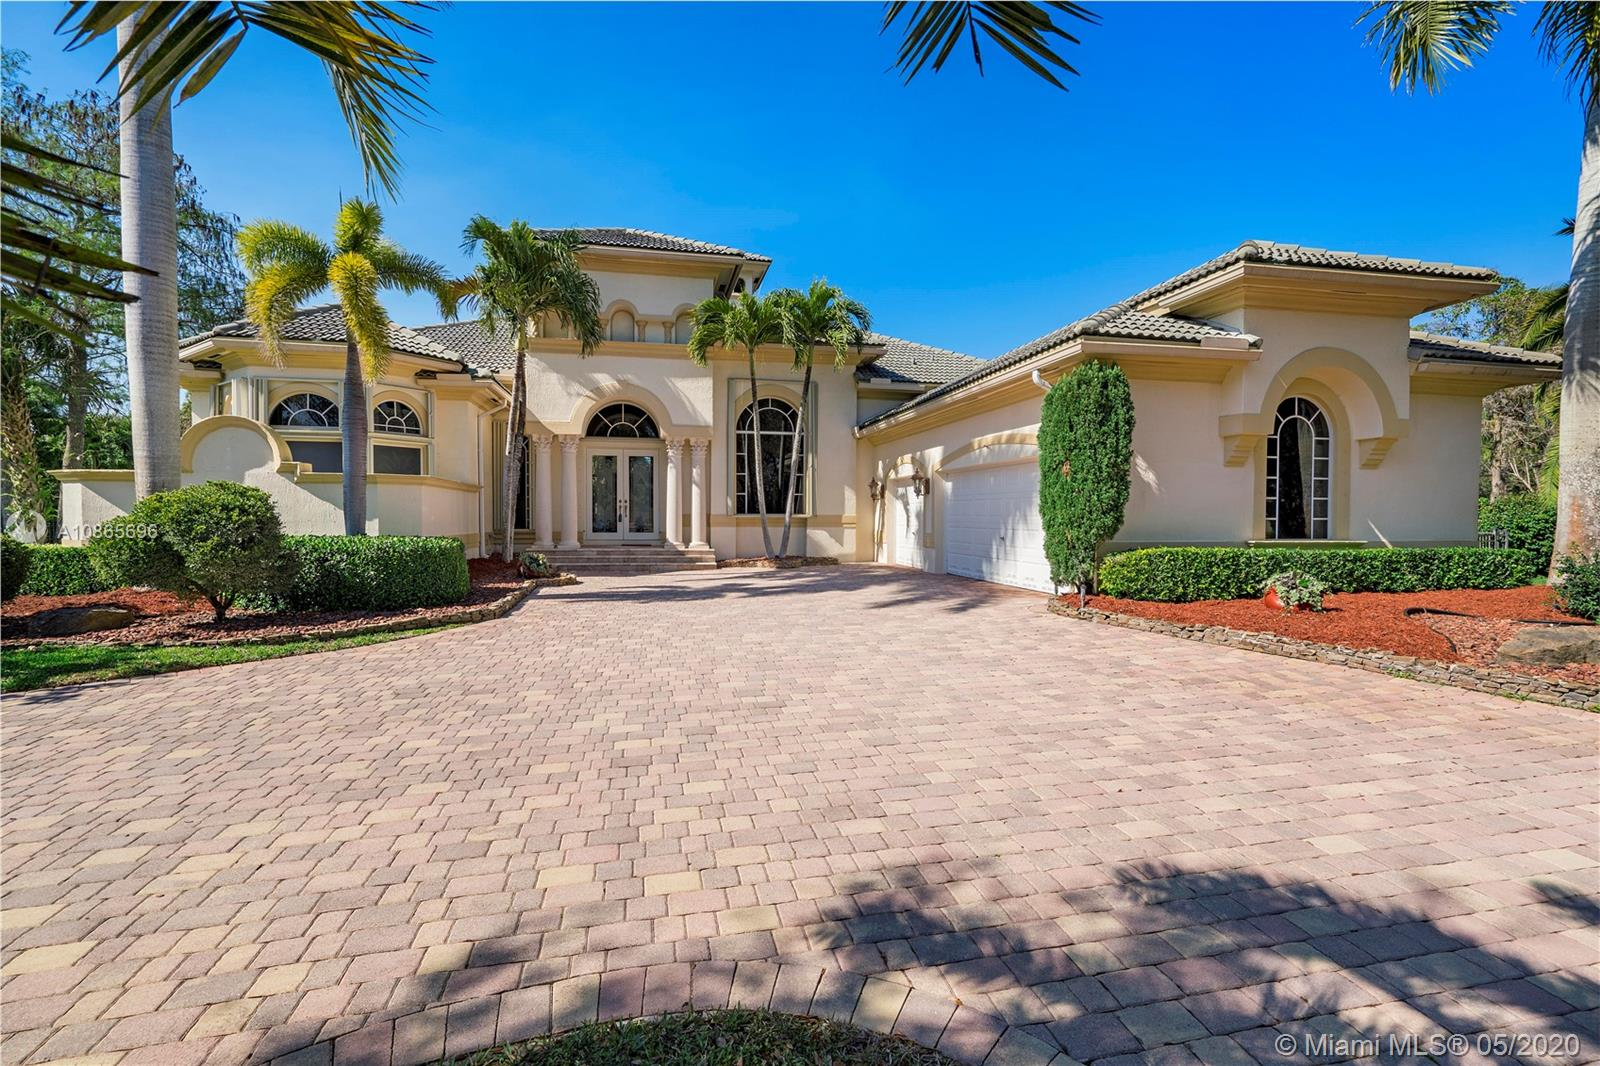 6288 NW 92nd Ave, Parkland, FL 33067